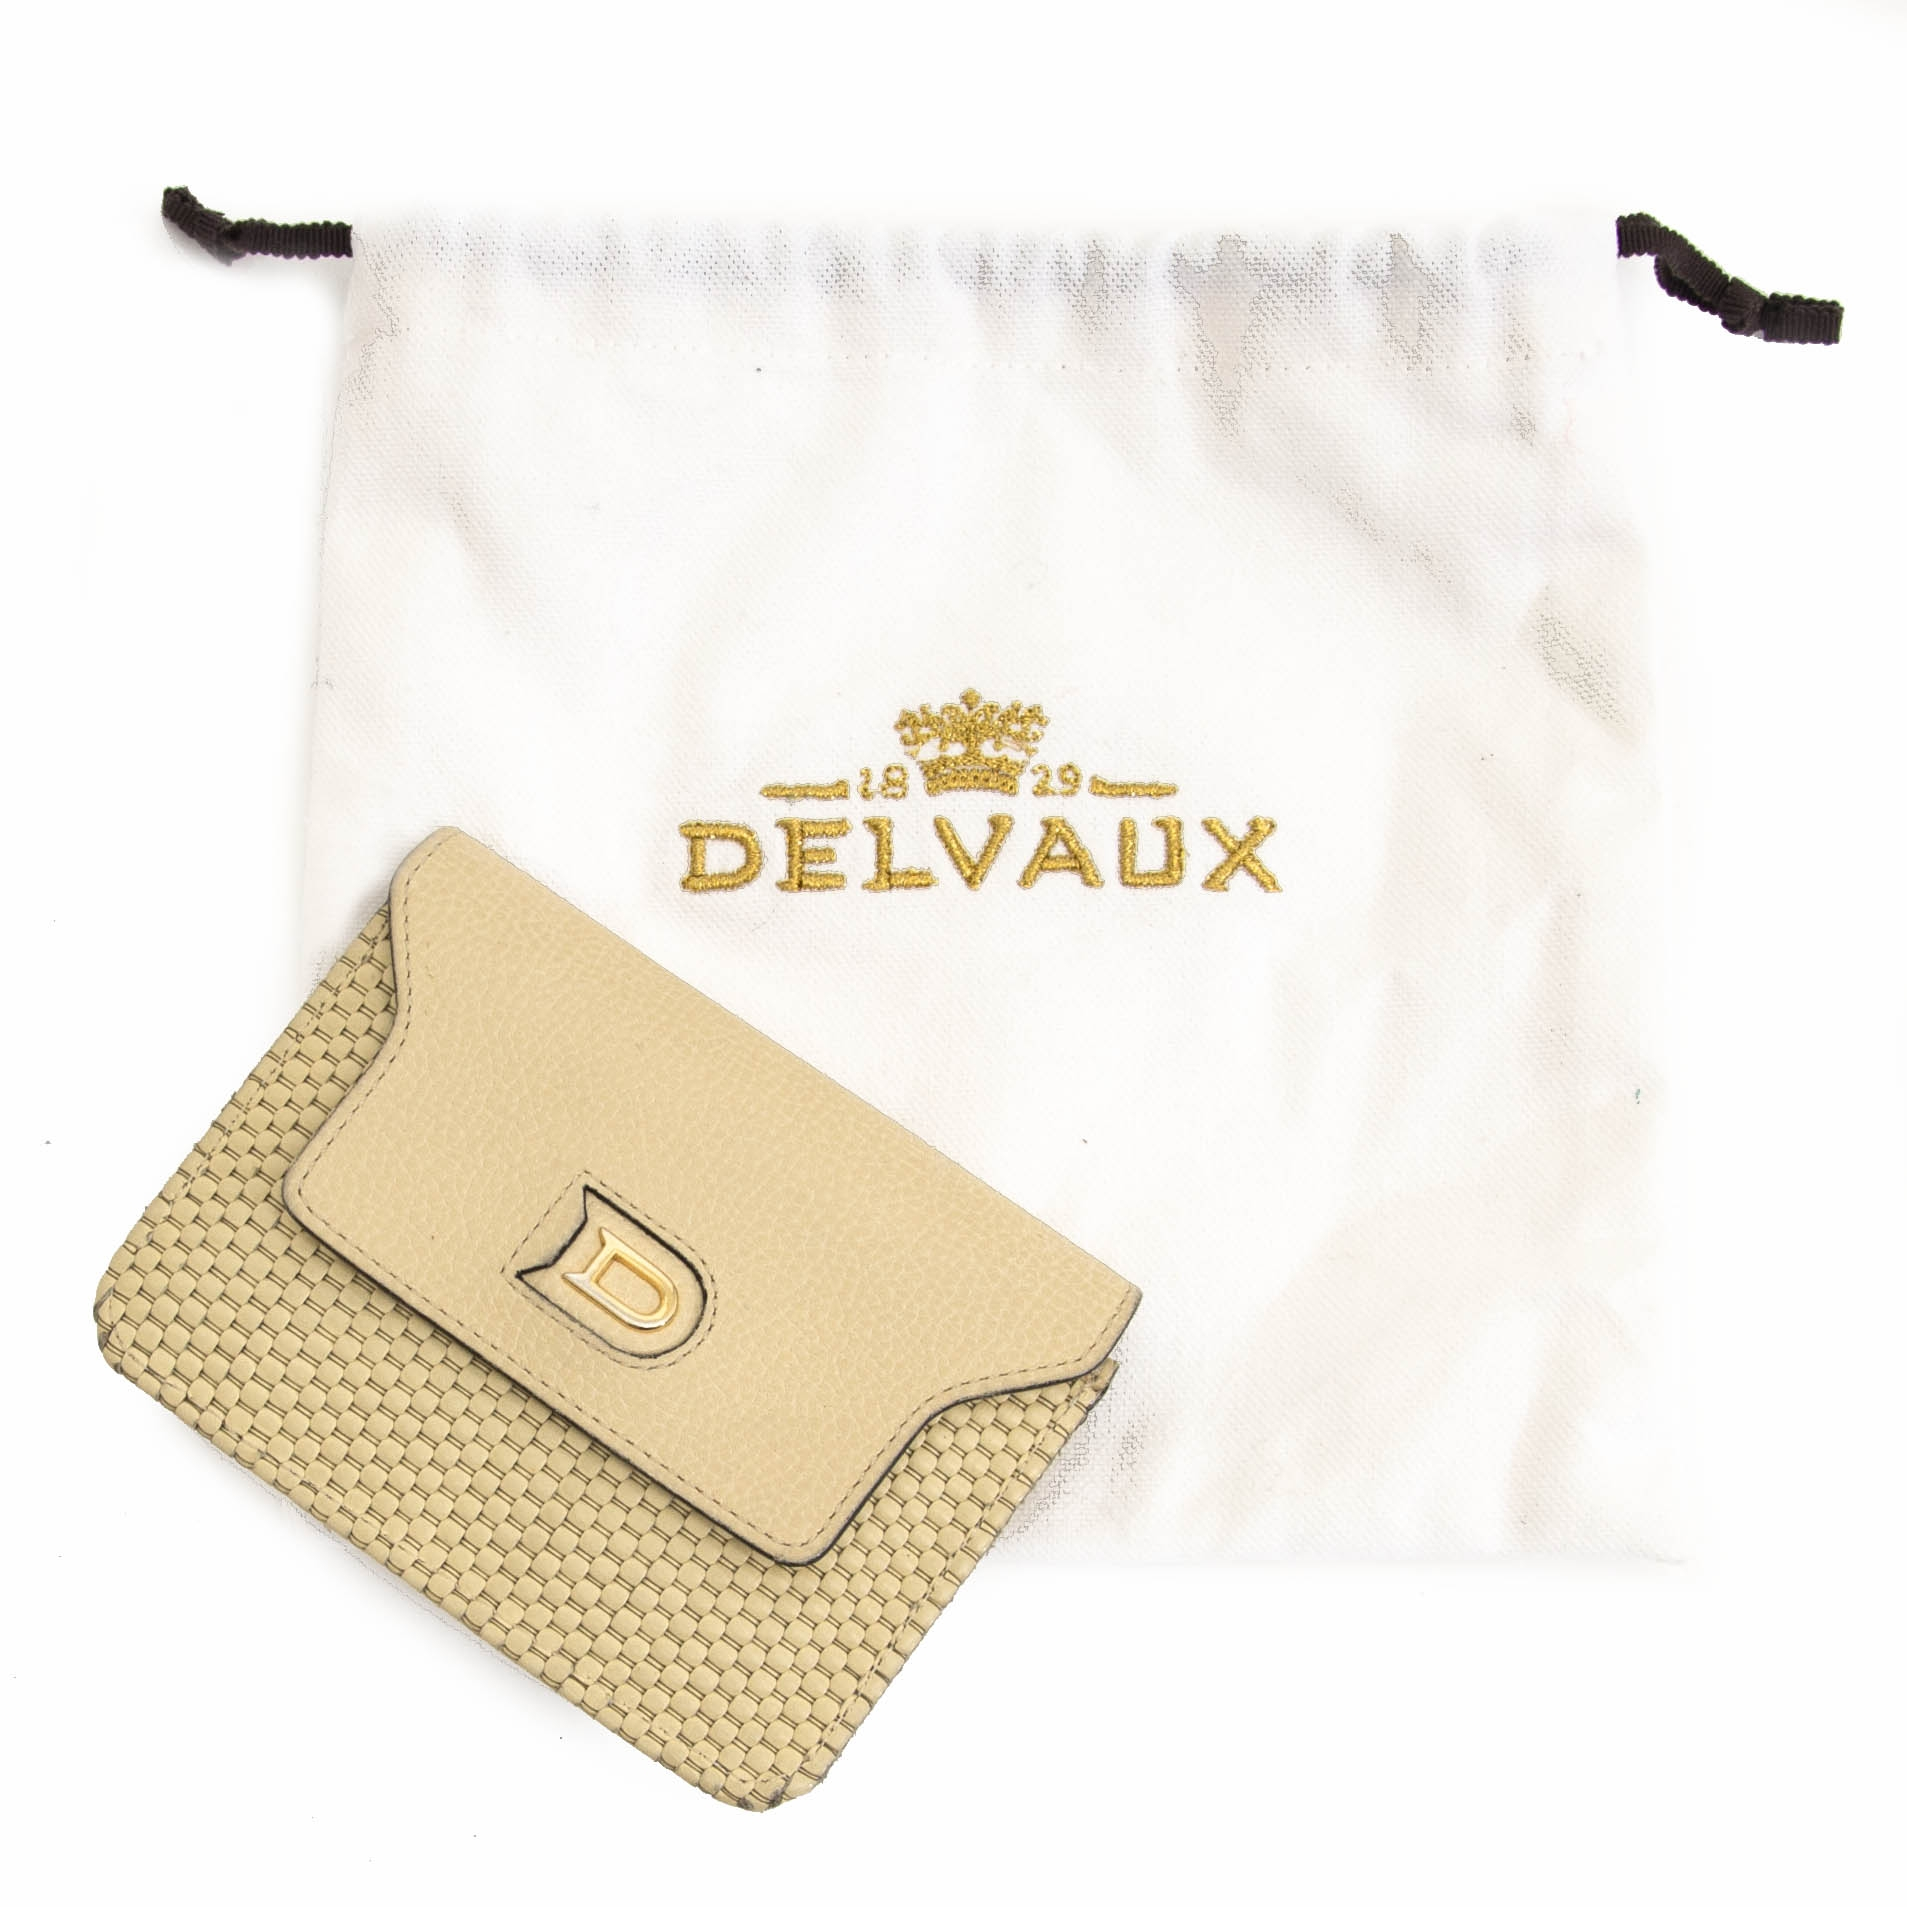 looking for a Delvaux Toile de Cuir Coin Purse? now online for the best price at labellov.com